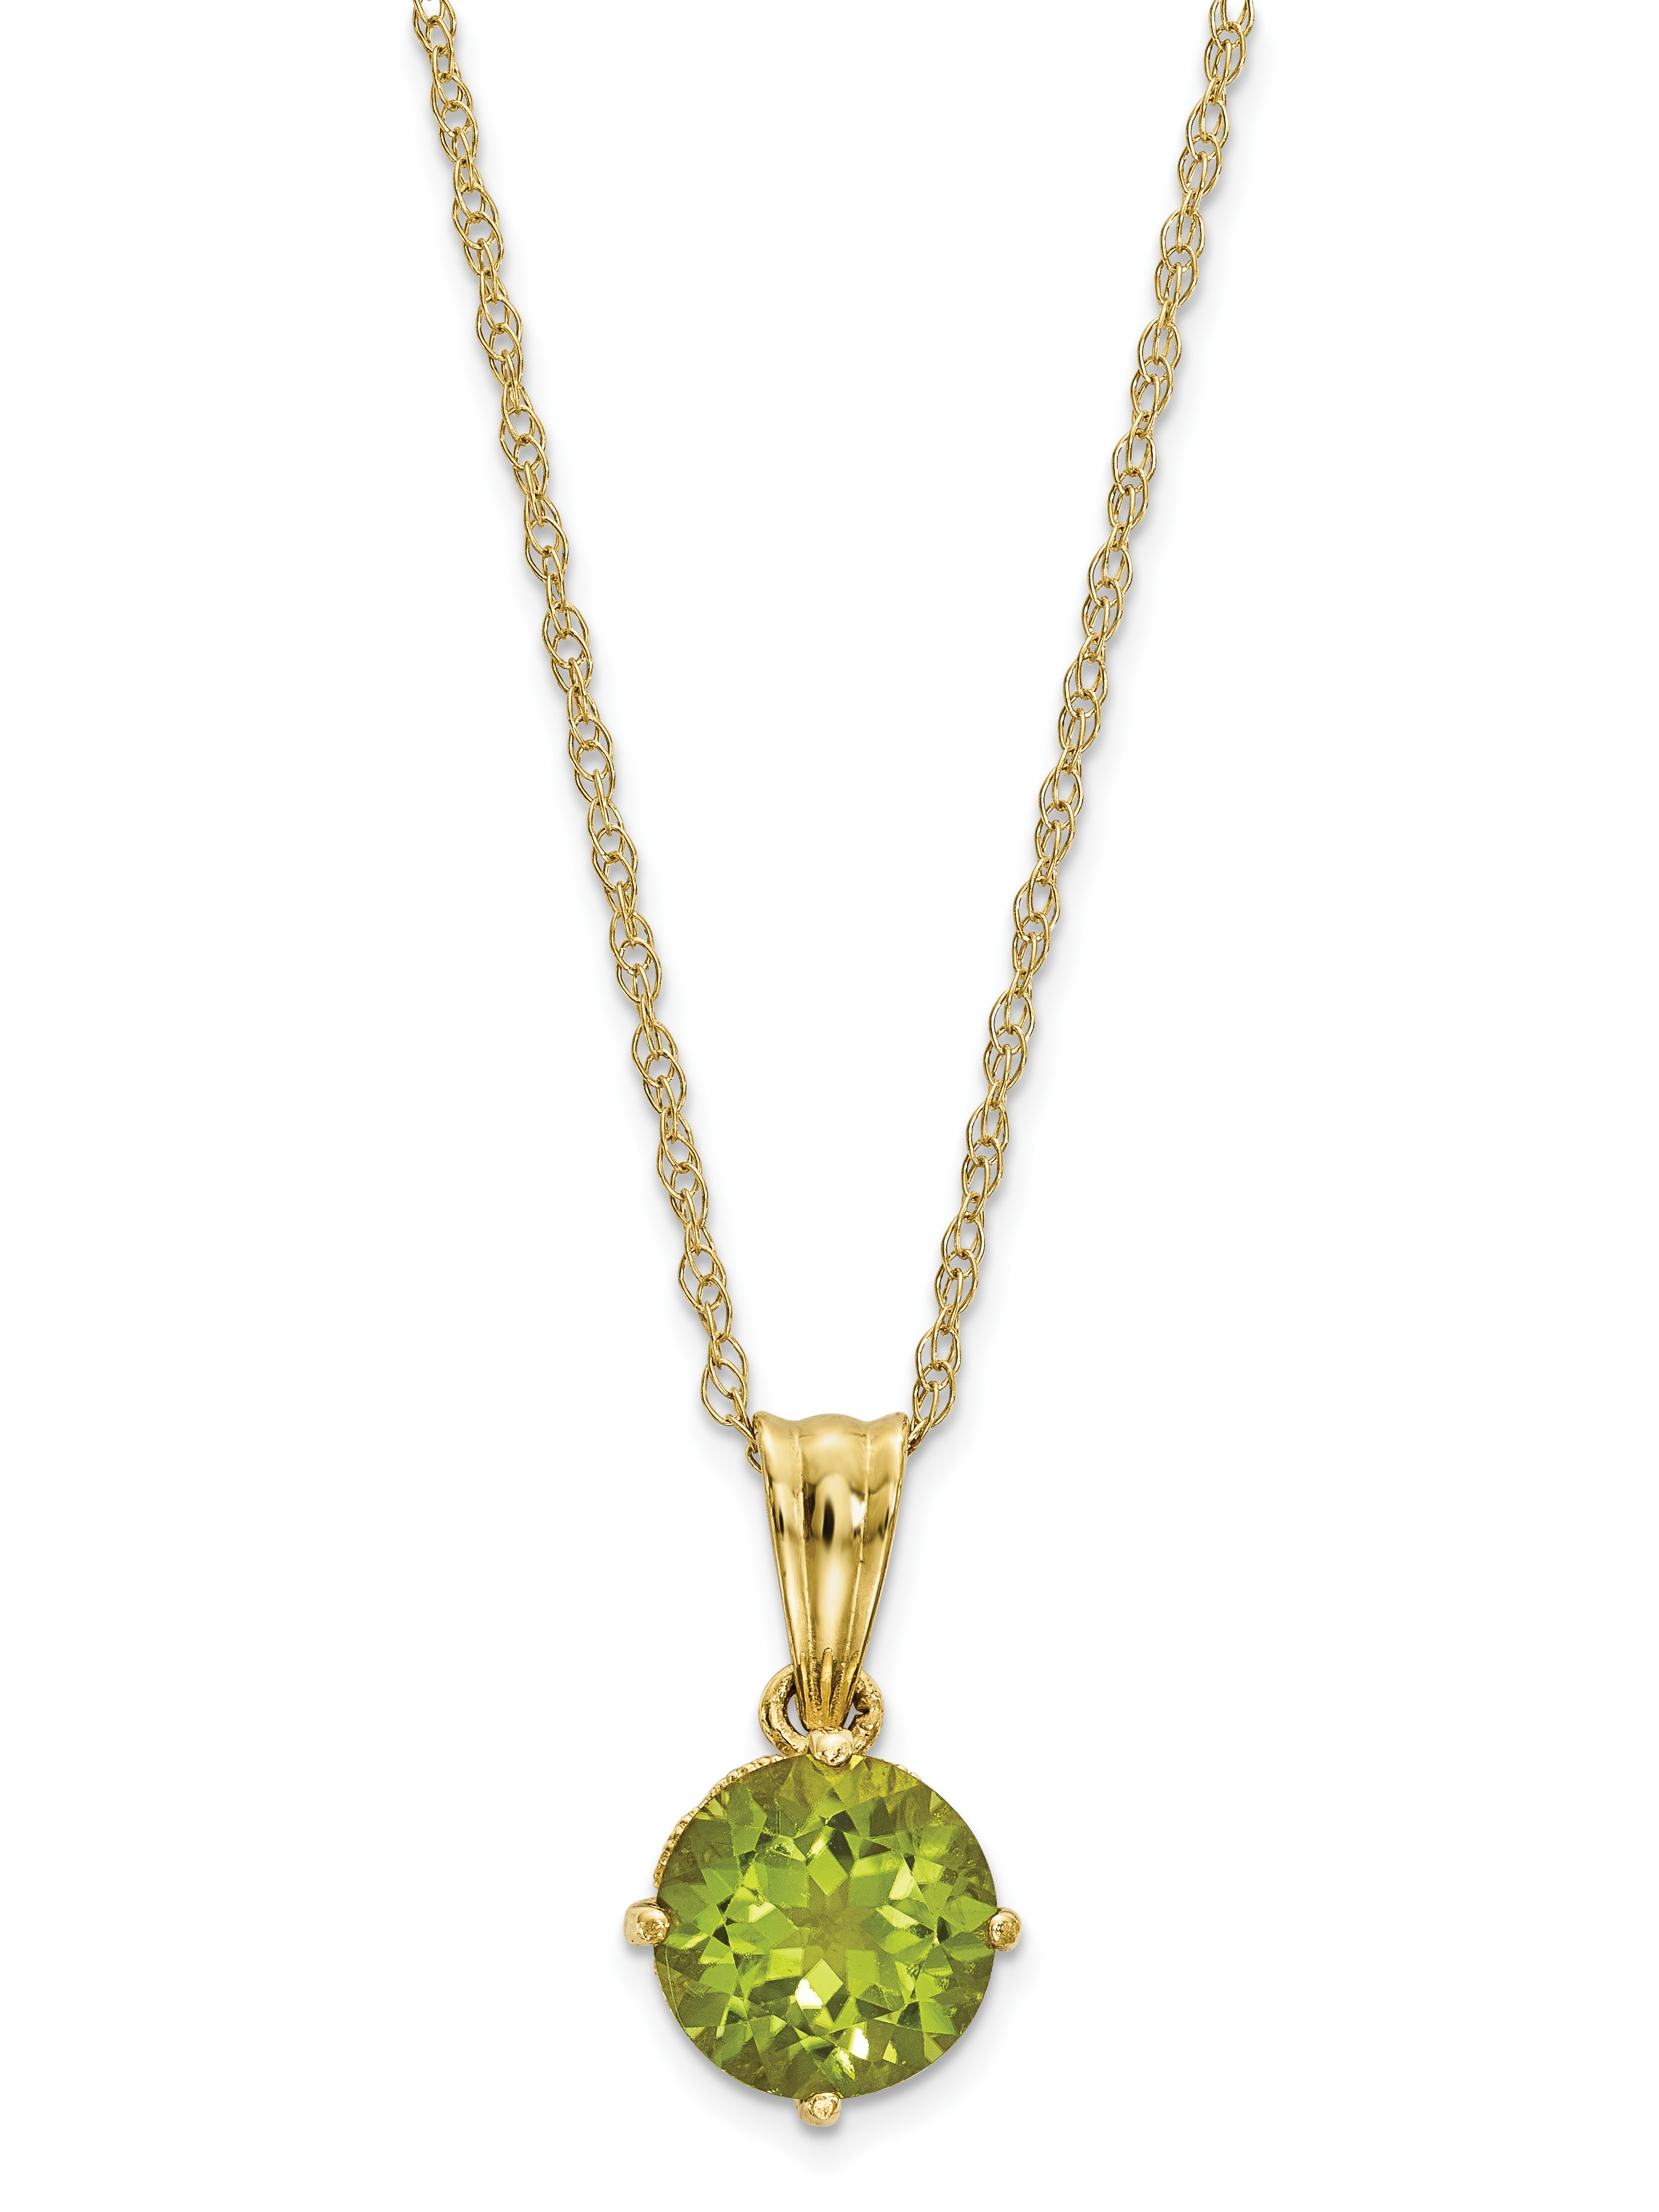 10K Tiara Collection Polished Diamond Peridot Necklace by Tiara Collection